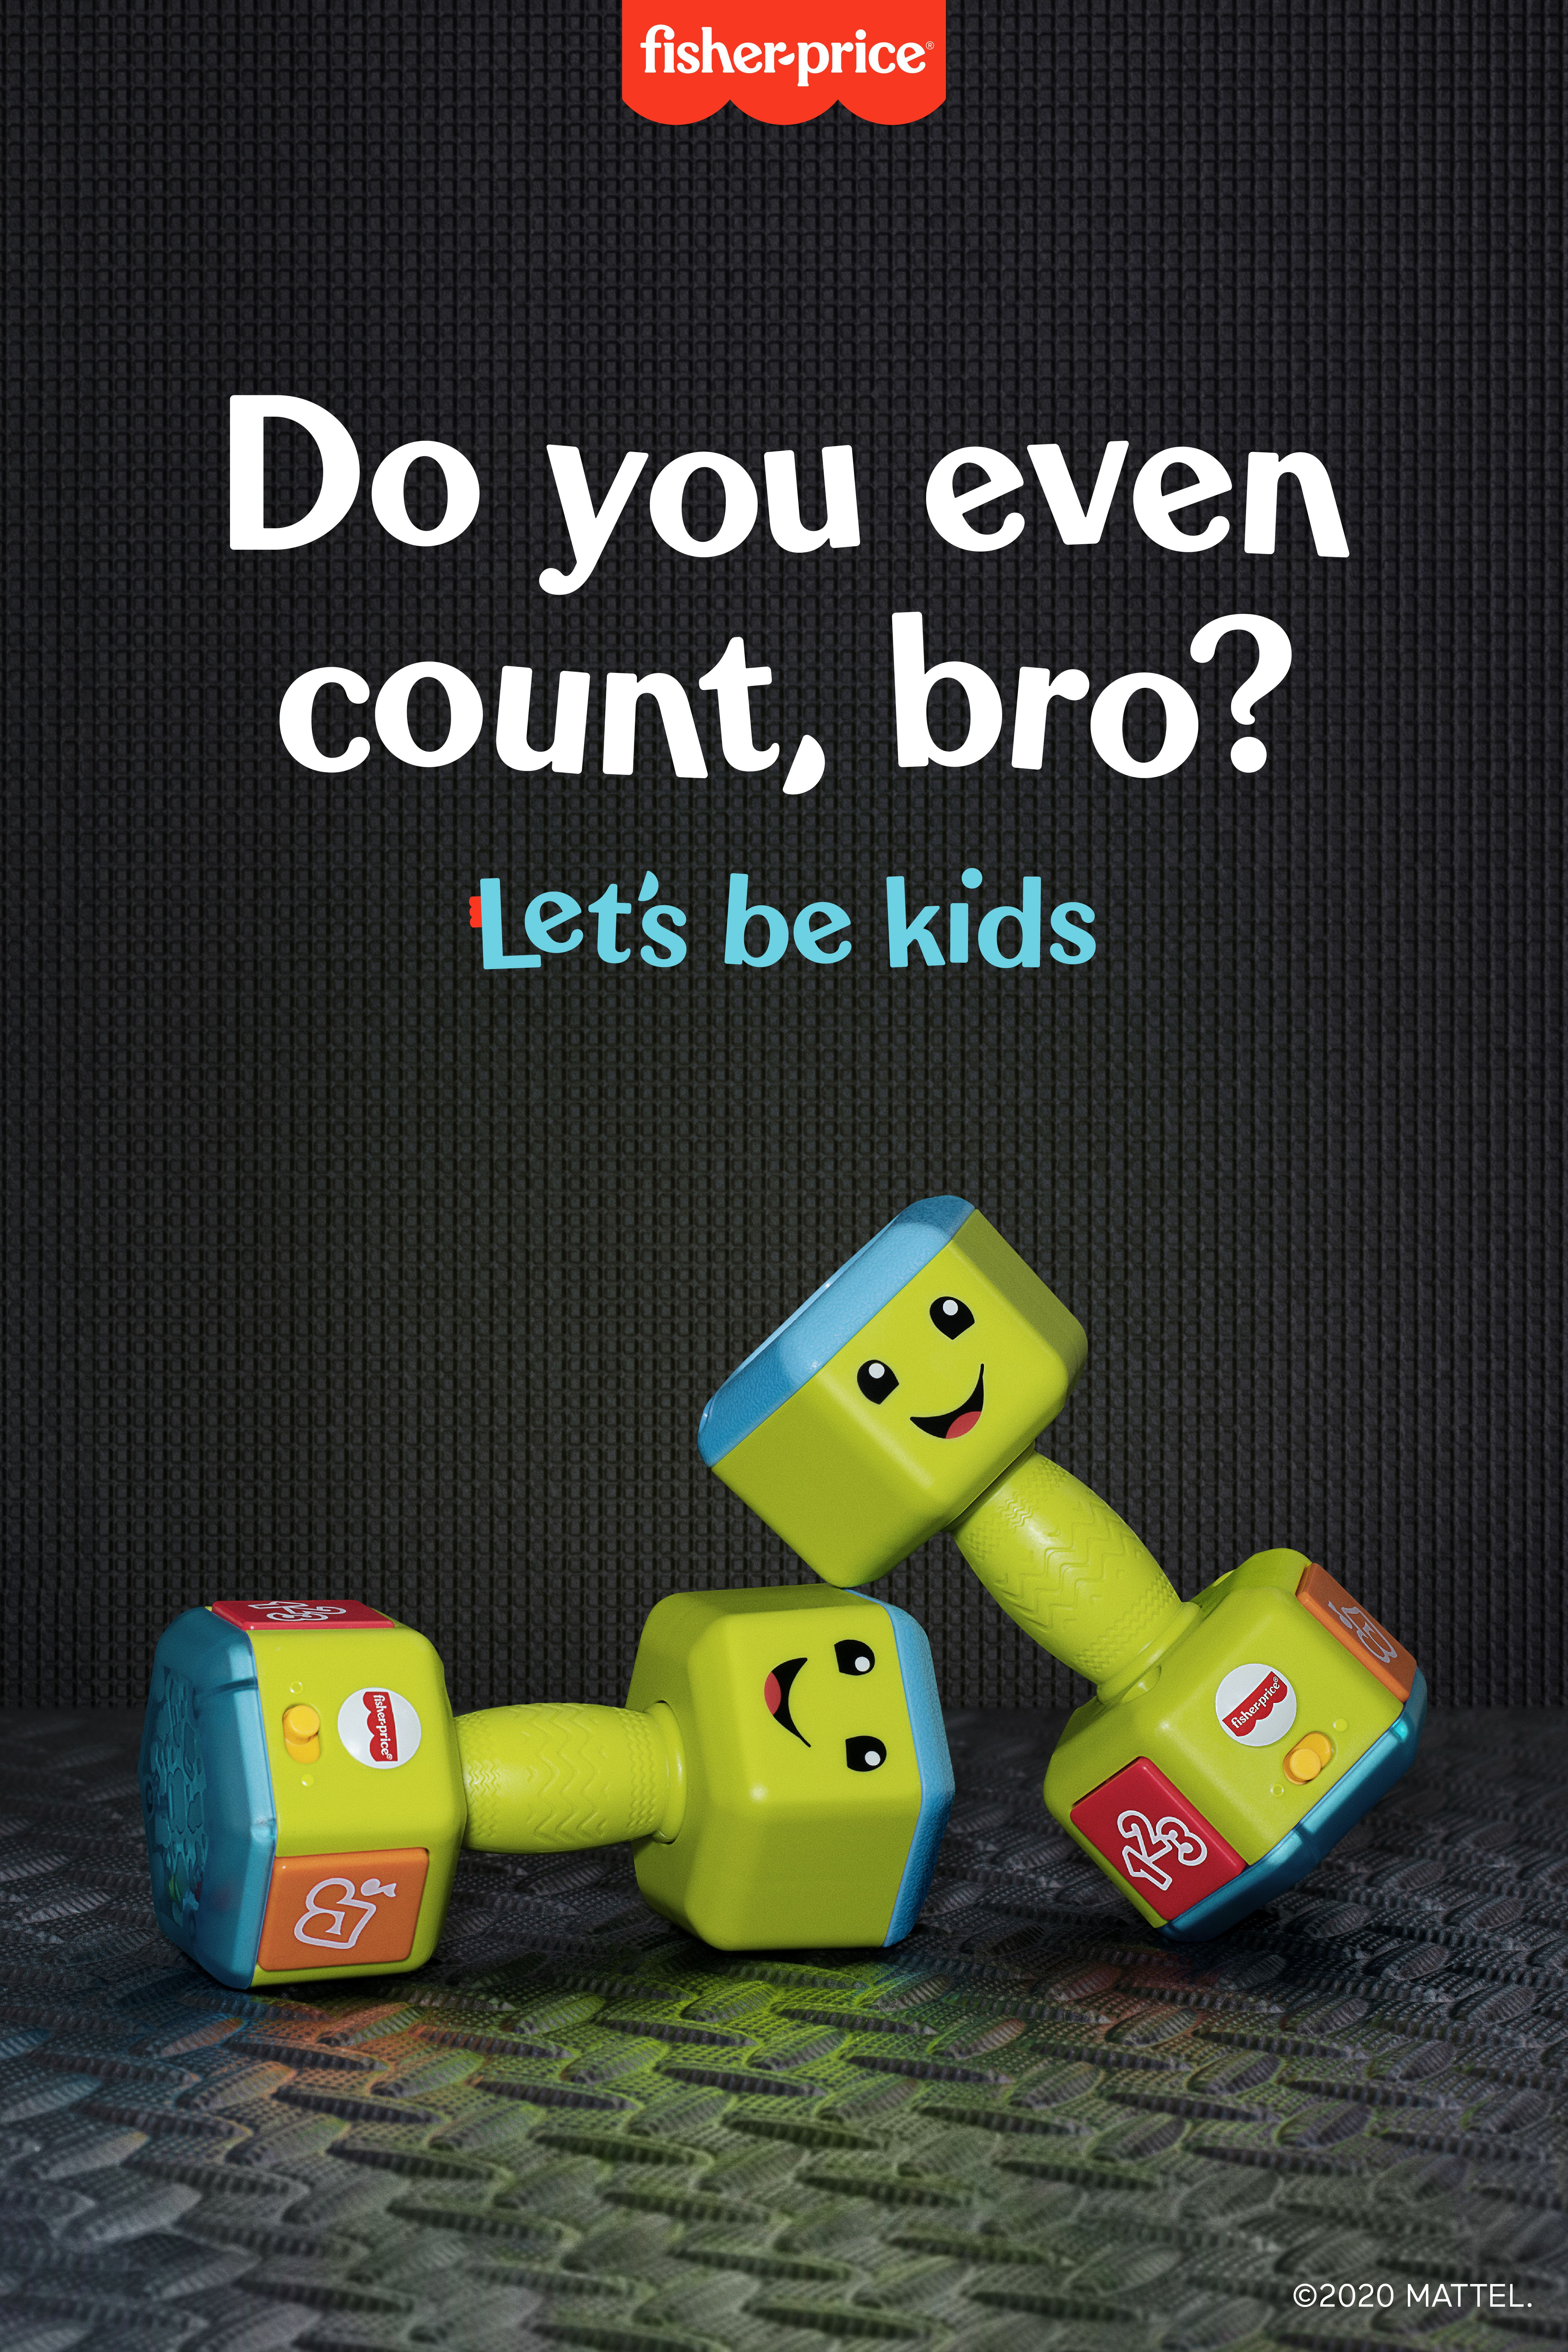 Let's Be Kids